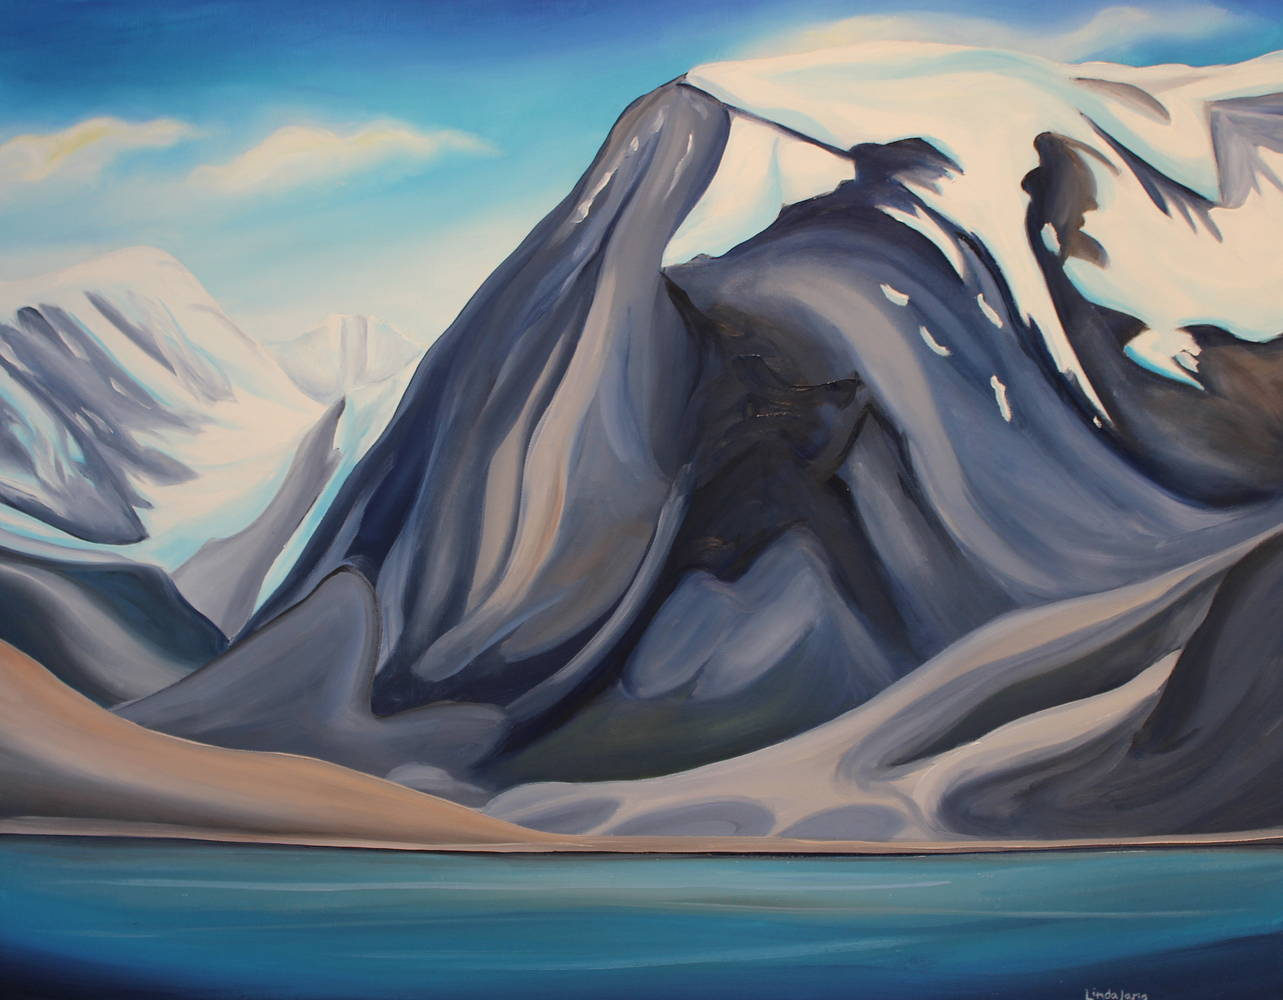 Oil painting Auyuittuq - Land that Never Melts by Linda Lang